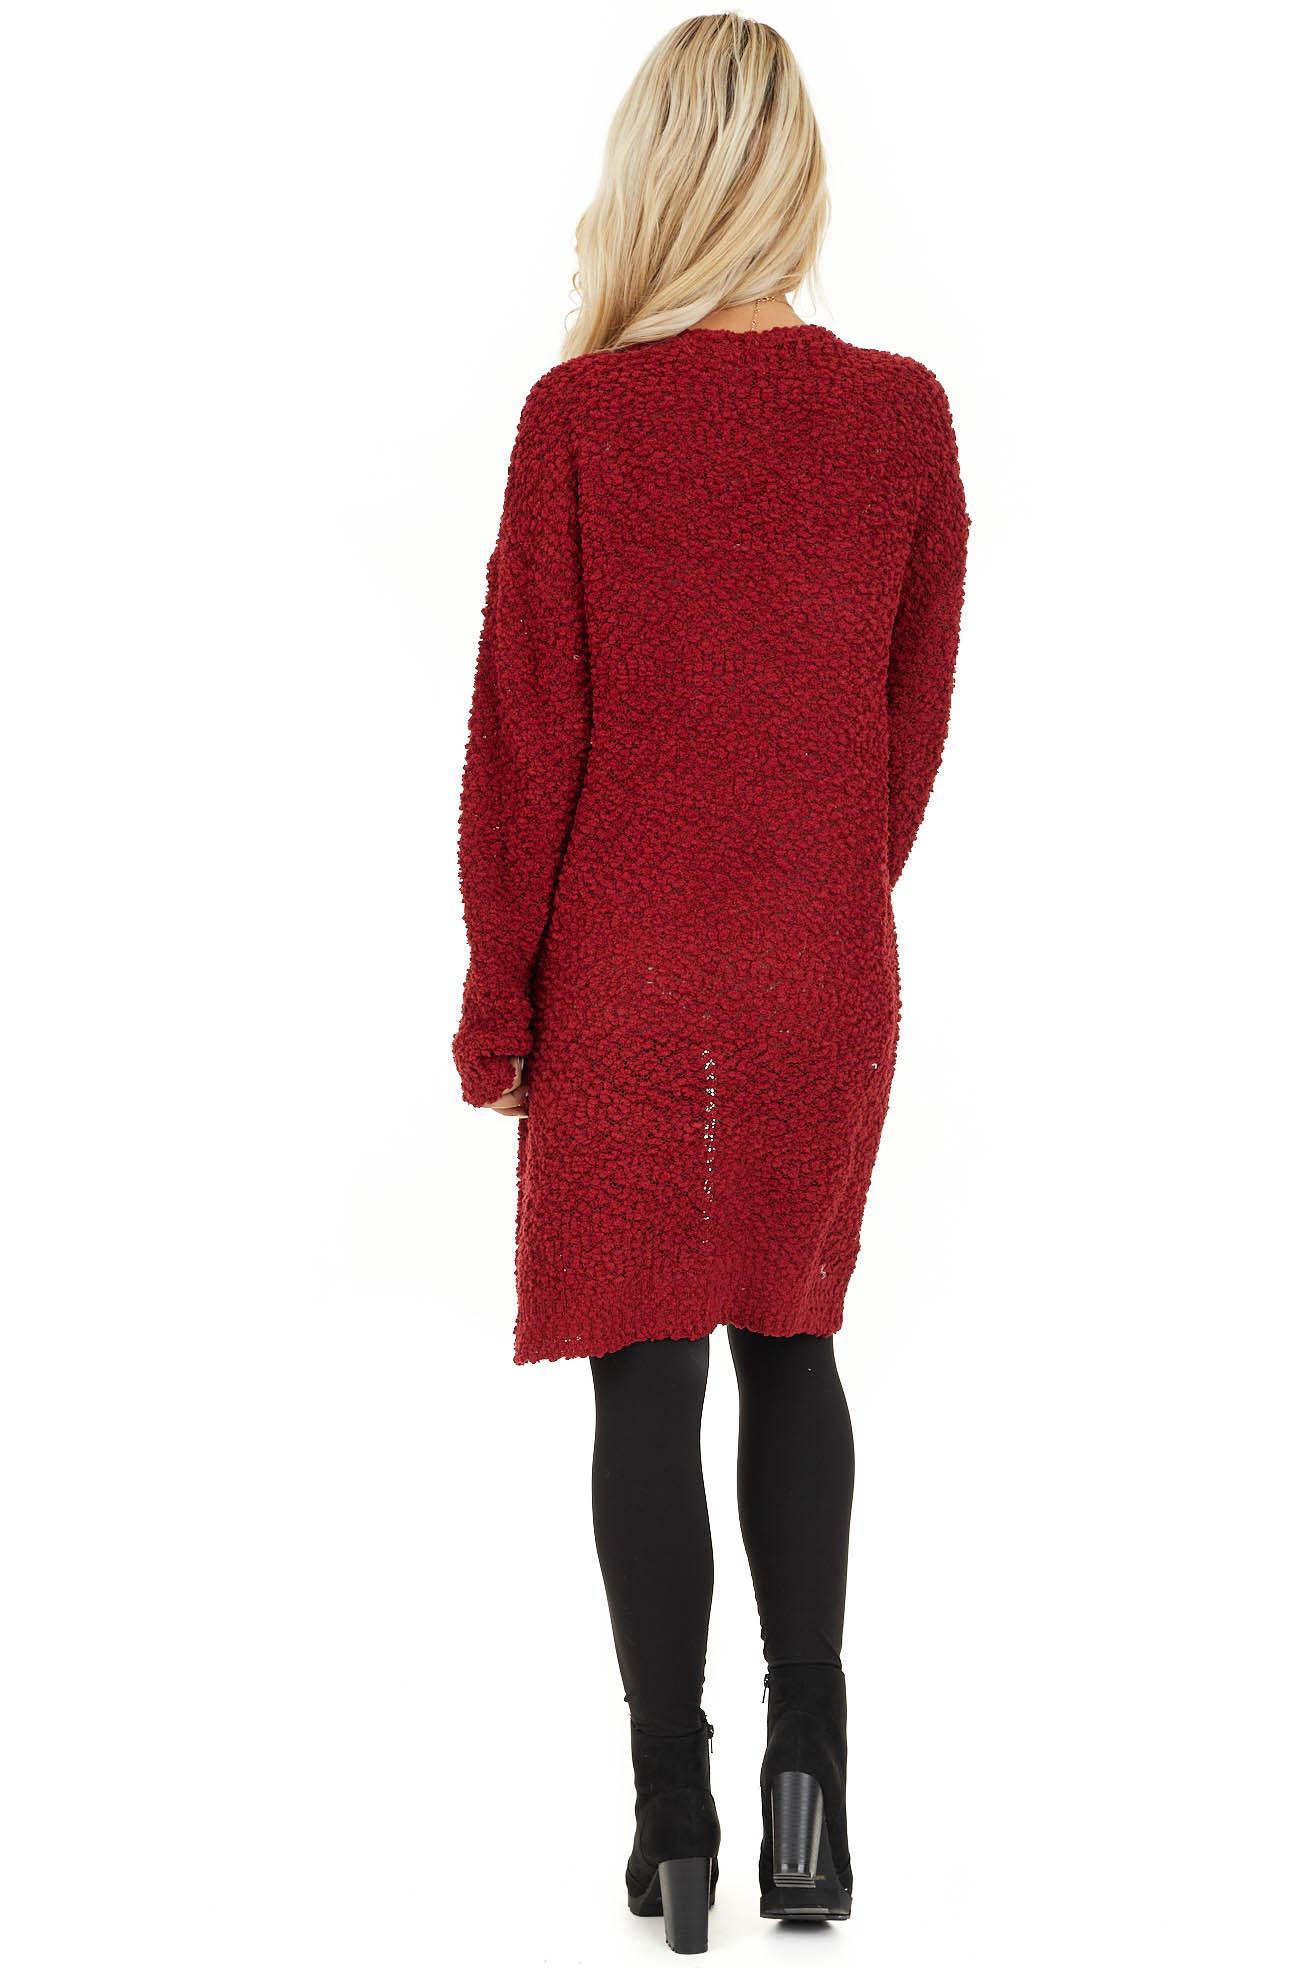 Ruby Open Front Popcorn Knit Cardigan with Pockets back full body